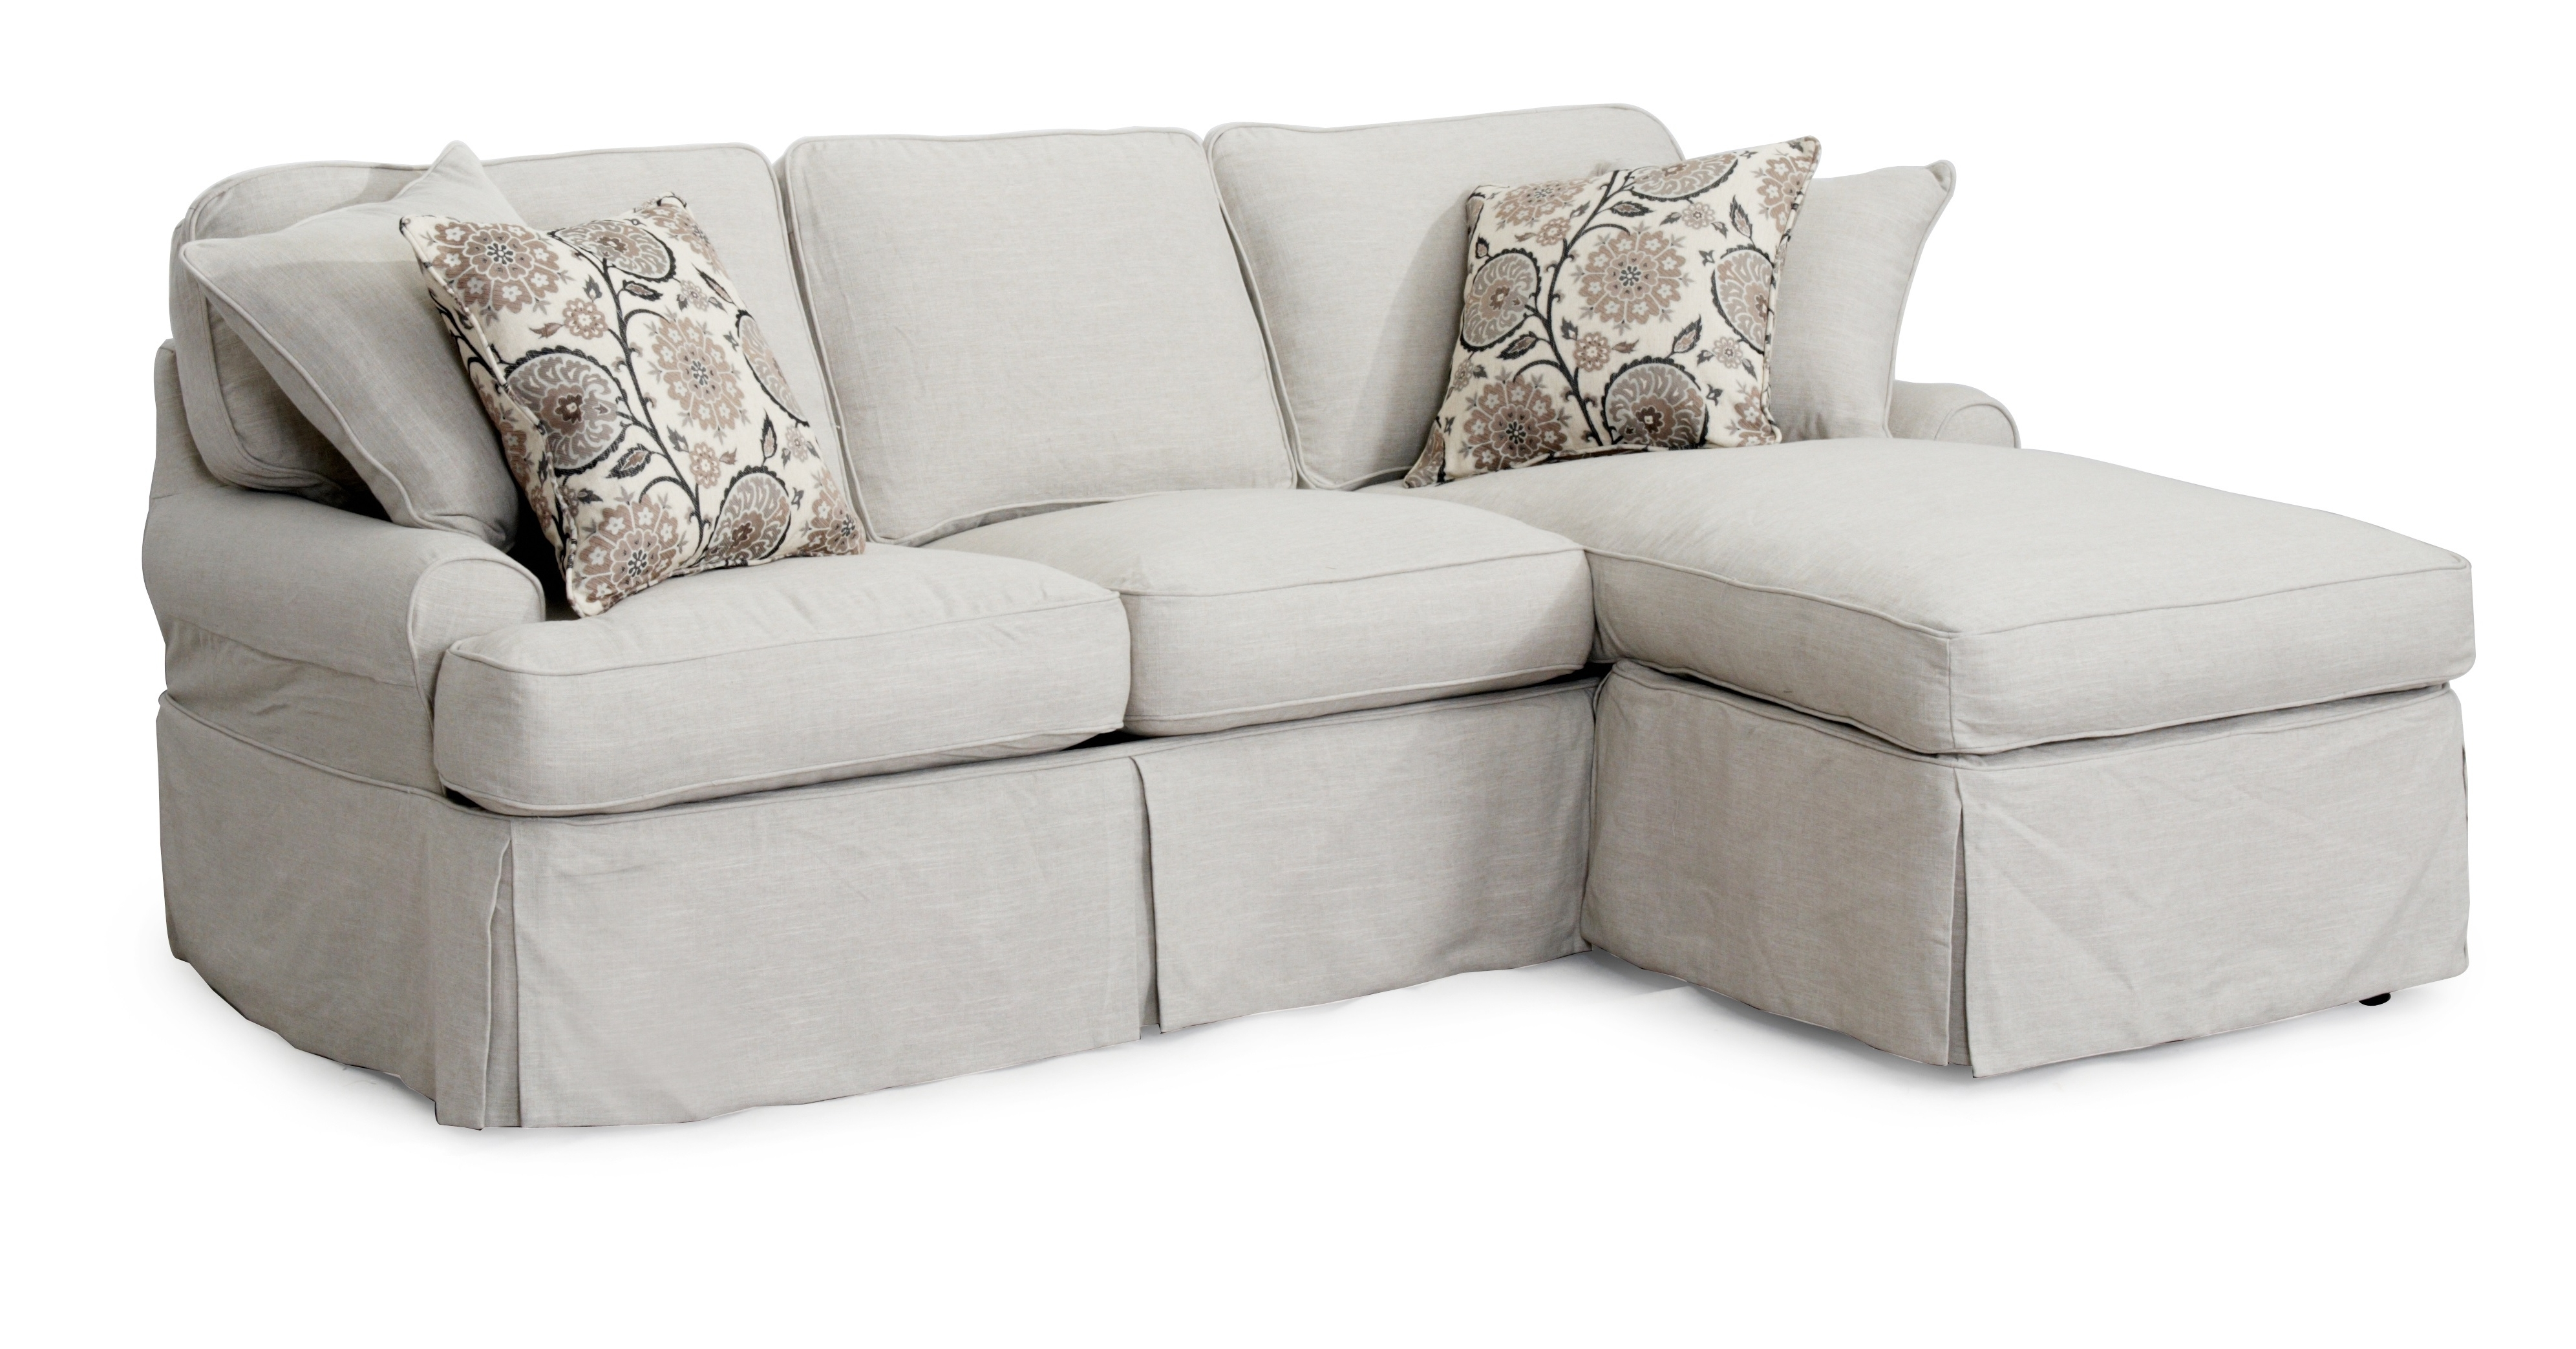 Latest Chaise Sleeper Sofa – Interior Design Throughout Sofa Chaise Sleepers (View 10 of 15)